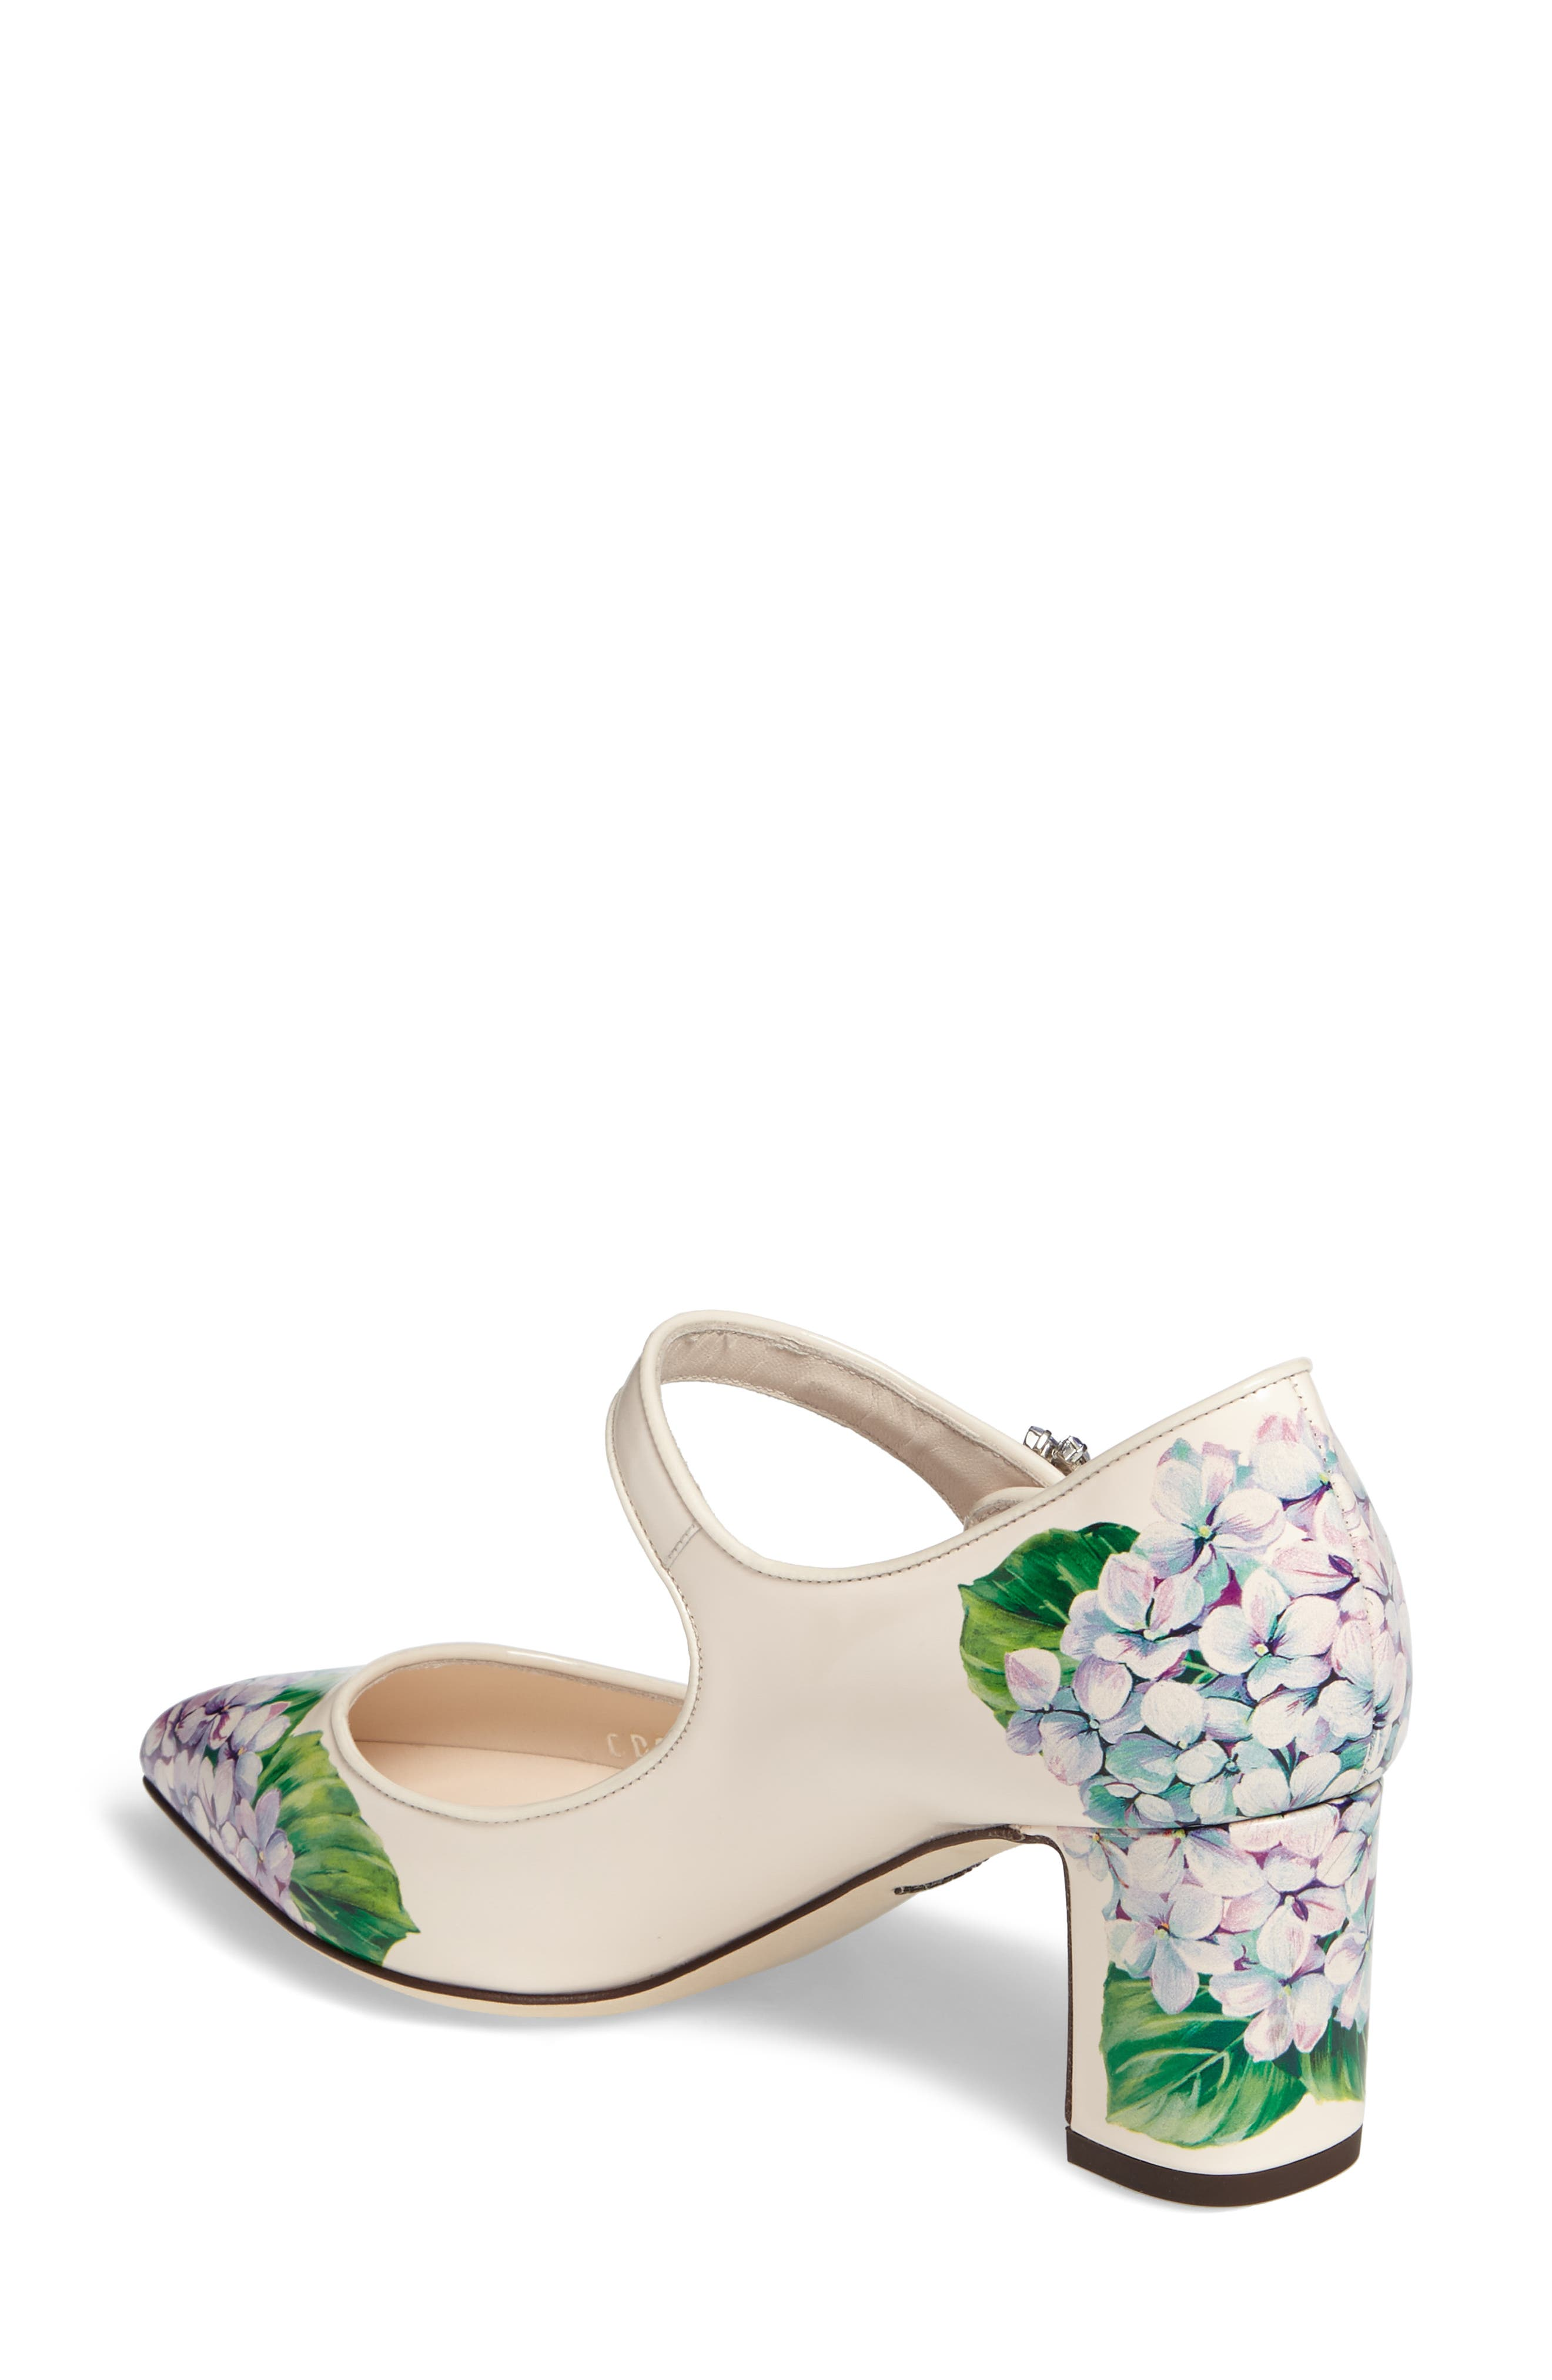 Hydrangea Mary Jane Pump,                             Alternate thumbnail 2, color,                             White Floral